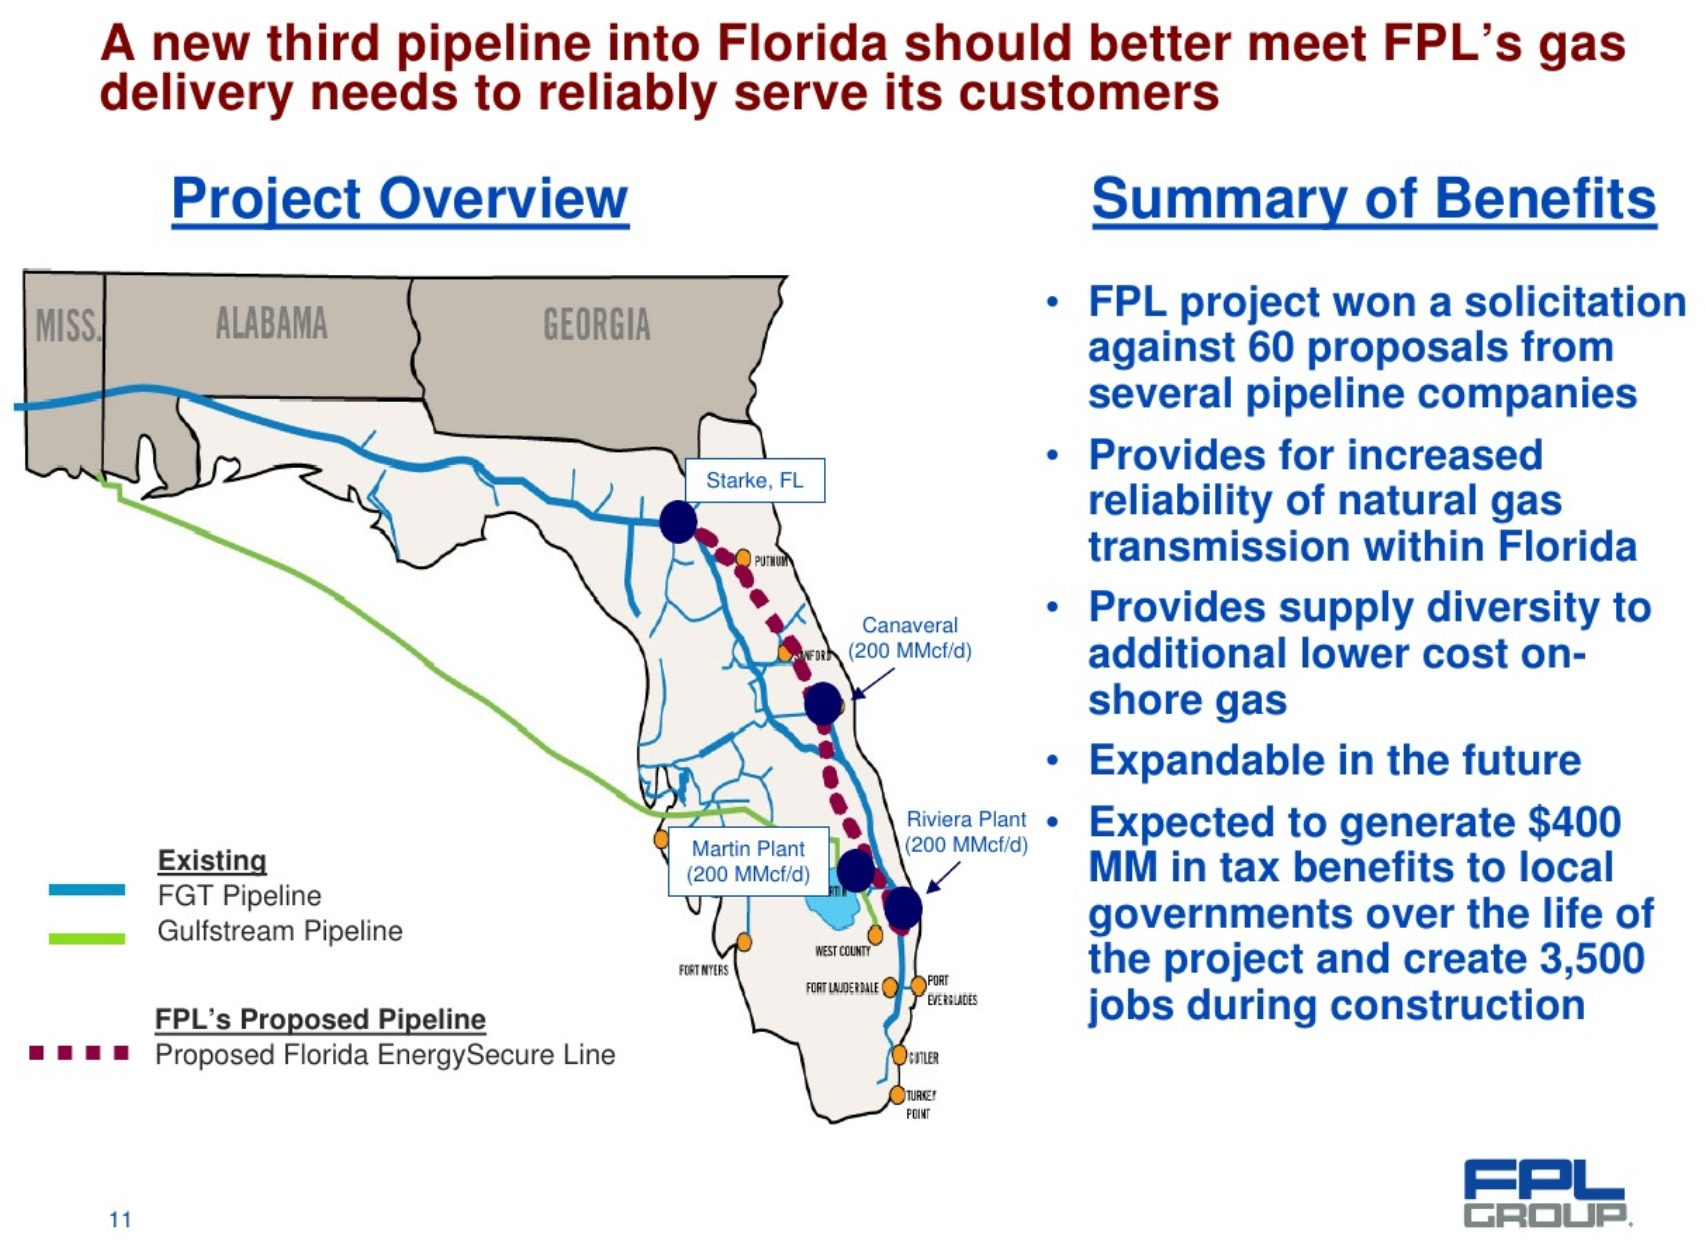 1705x1245 Proposed Florida EnergySecure Line, Map, in Earnings Call slides Q1 2009, by FPL, for WWALS.net, 28 April 2009